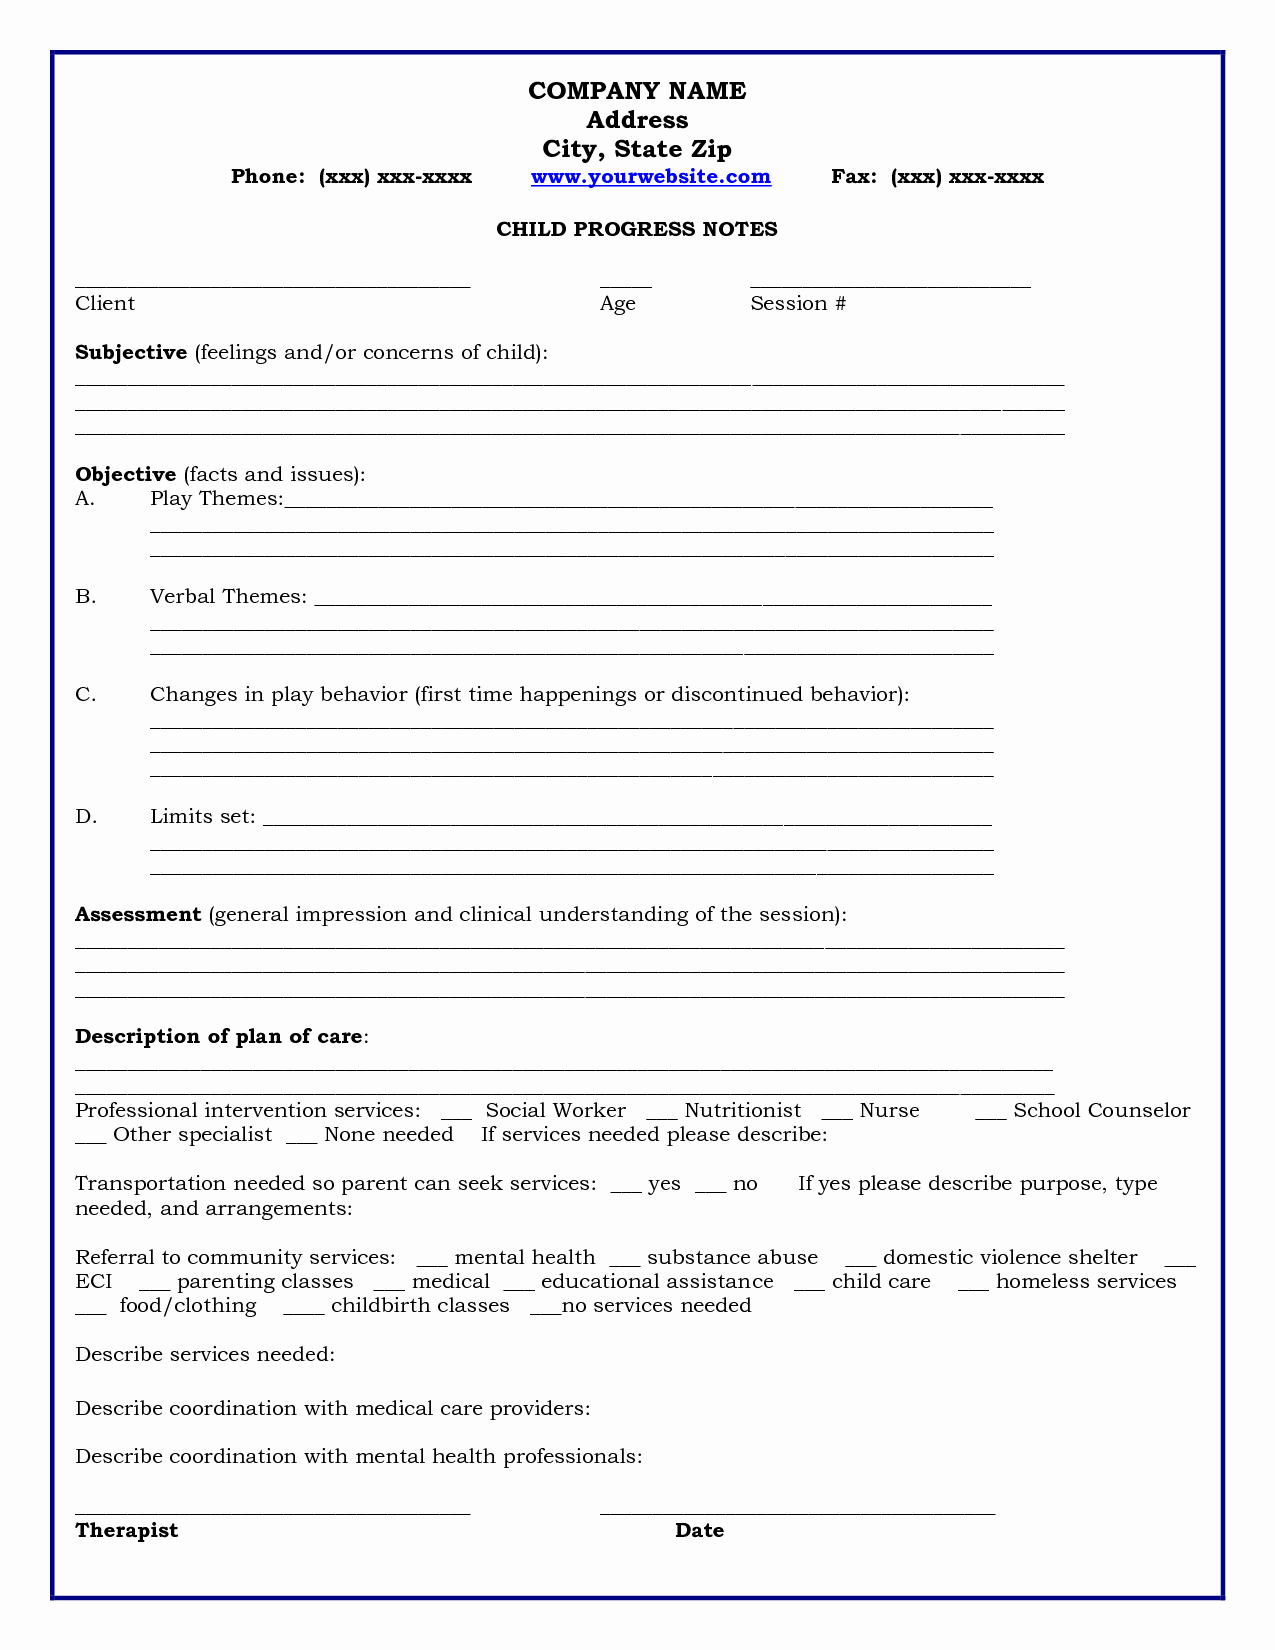 Group therapy Note Template Fresh Home Child Progress Notes Medicaid Child Progress